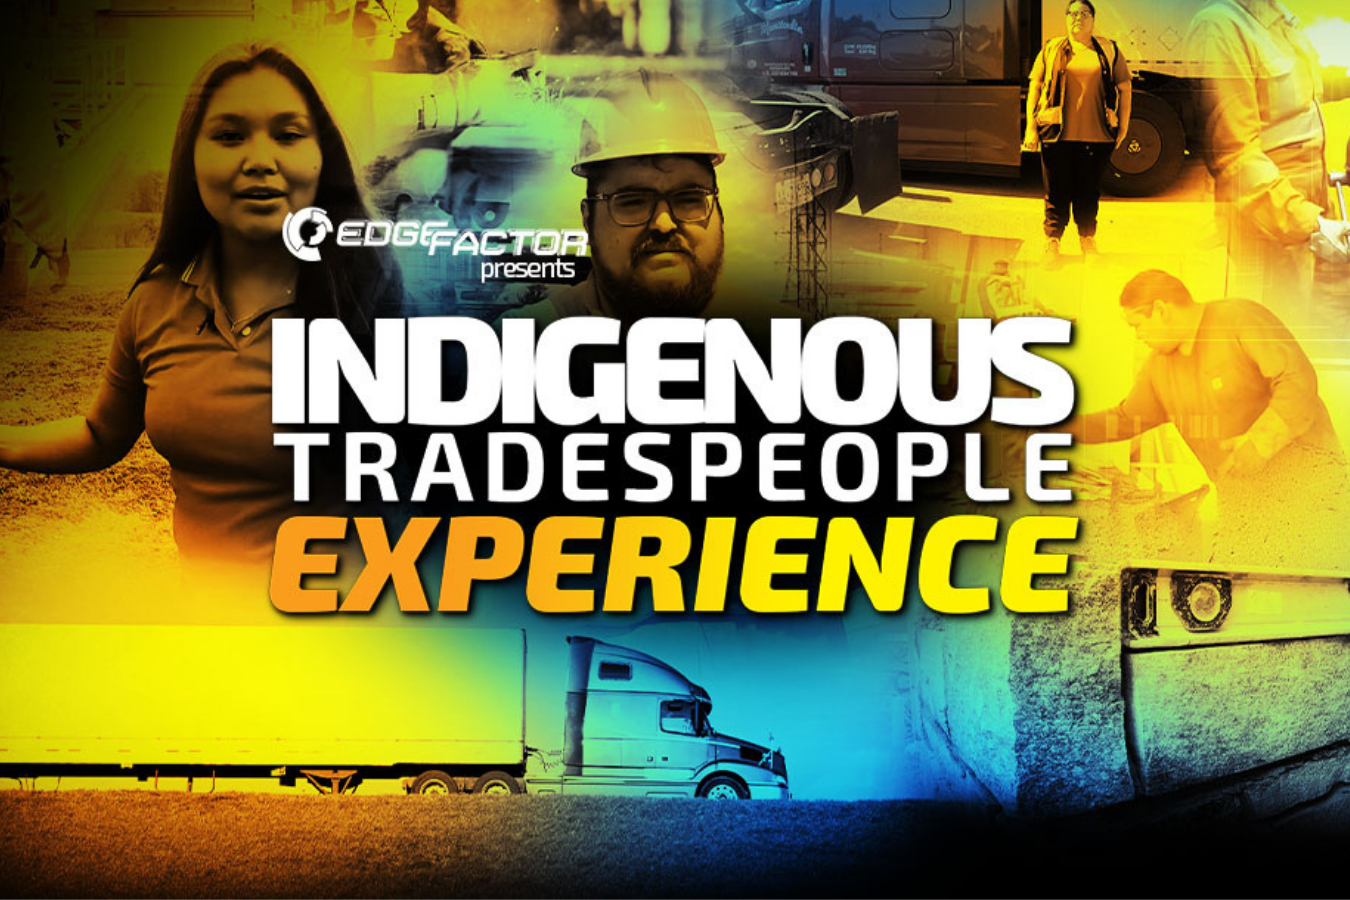 Edge Factor's Indigenous Tradespeople Experience celebrates and inspires career exploration in skilled trades.